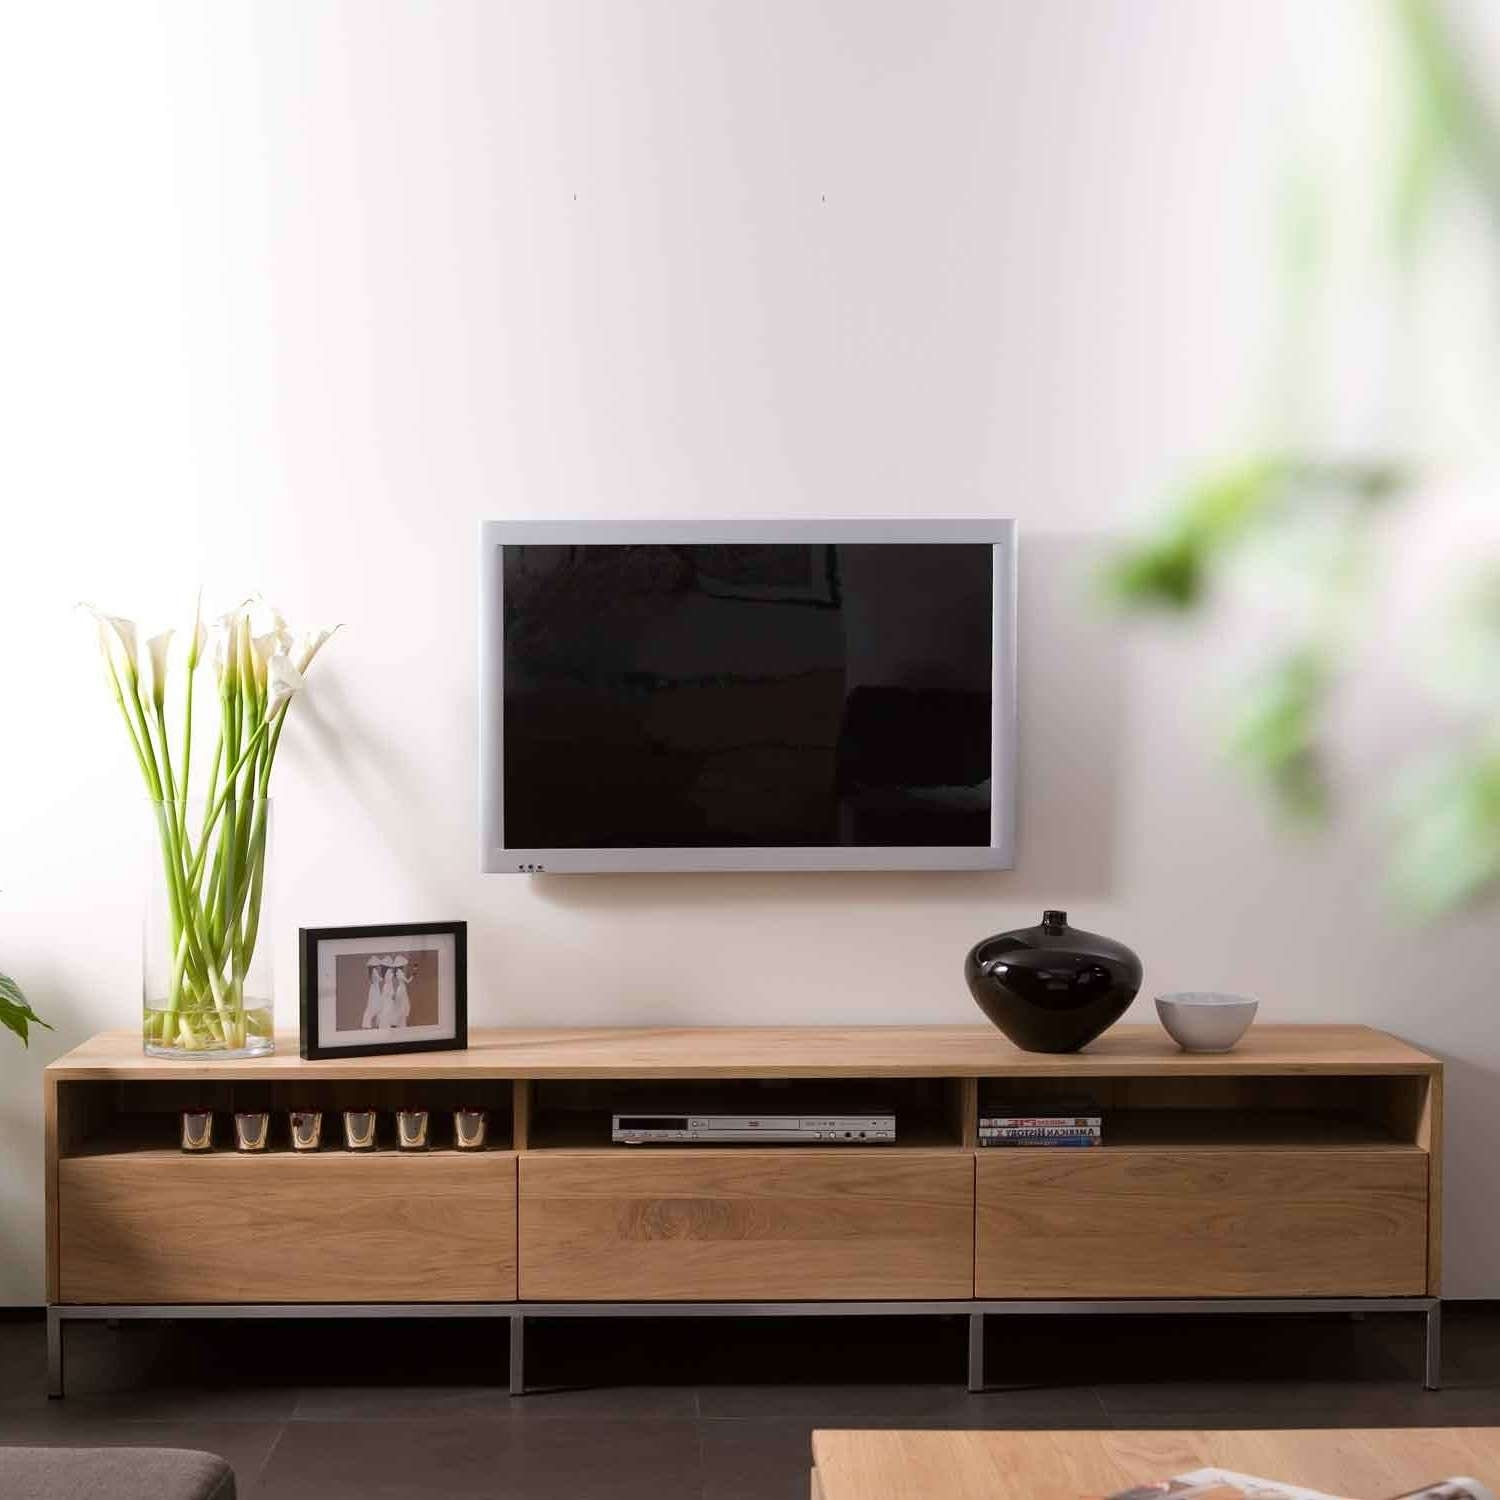 Ethnicraft Ligna Oak Tv Units | Solid Wood Furniture Pertaining To Oak Tv Stands (View 5 of 15)